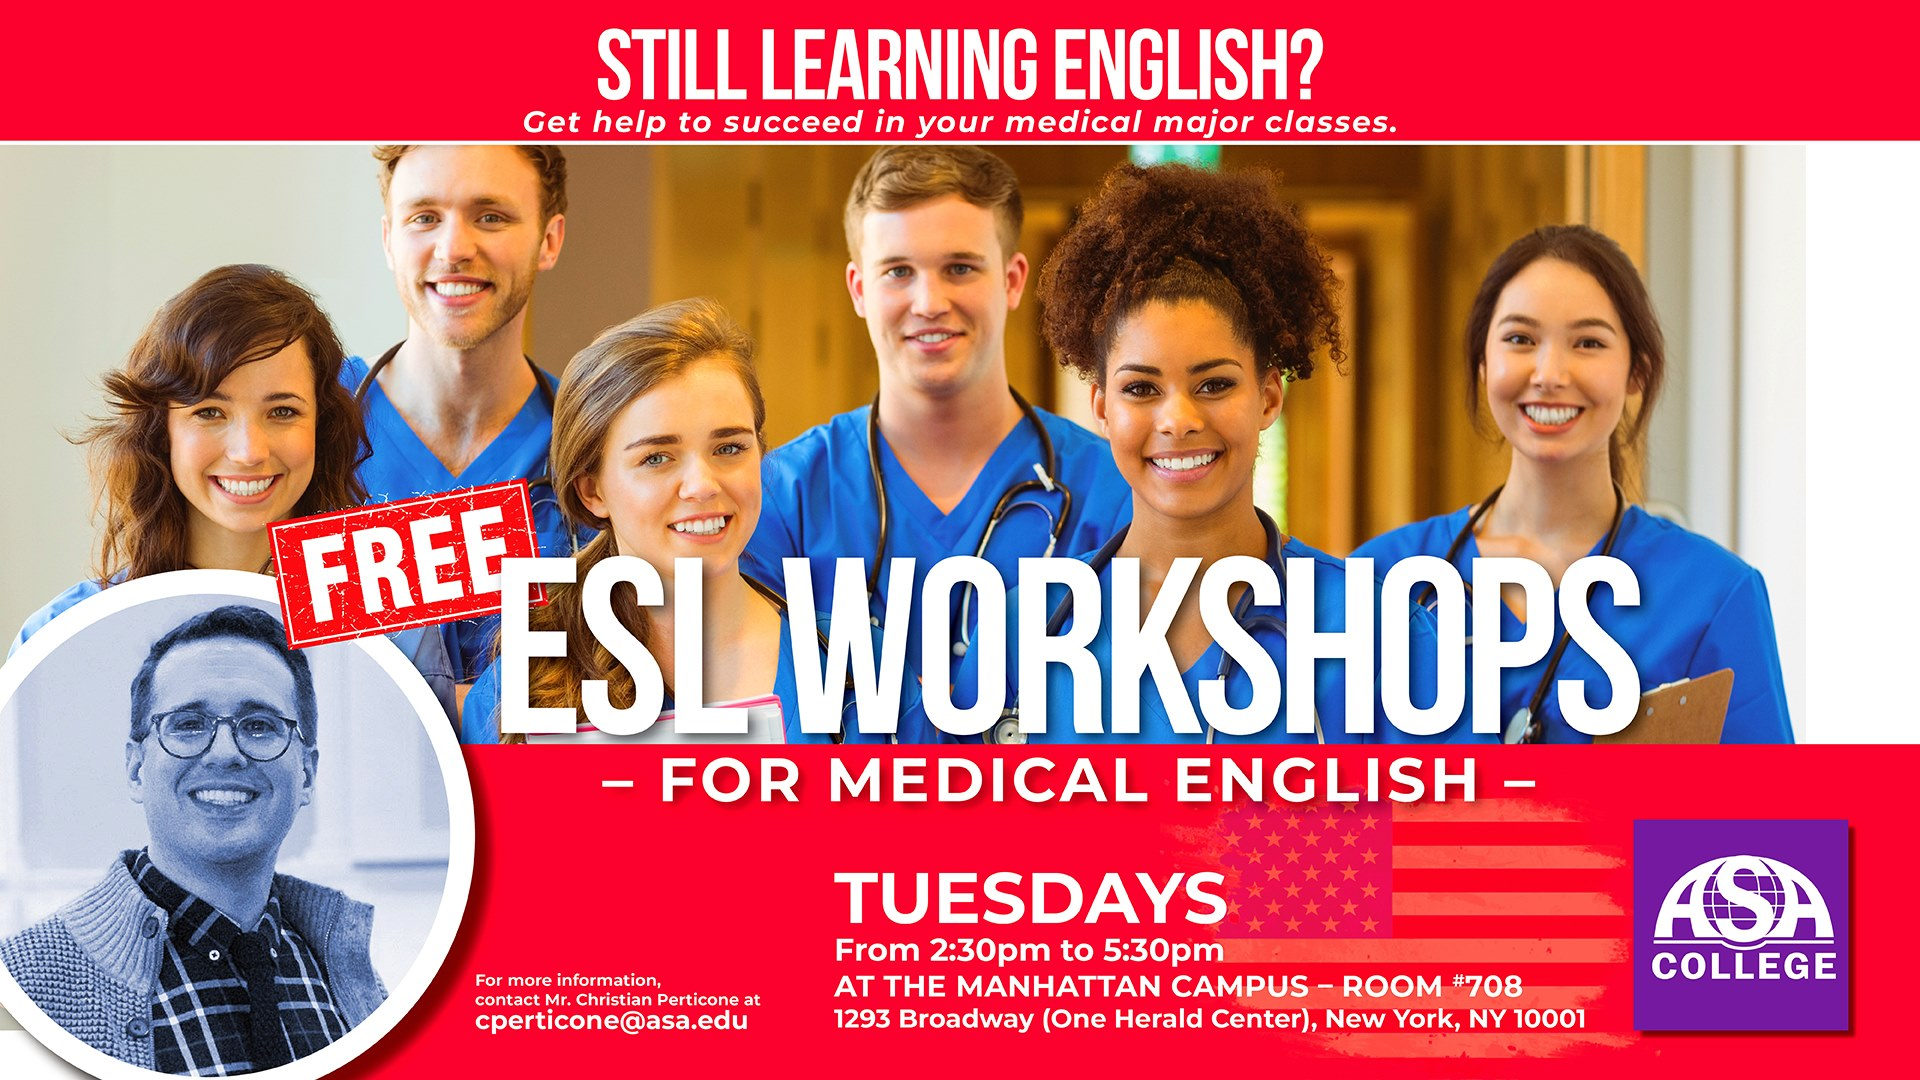 Free ESL workshop for Medical English in New York at ASA College